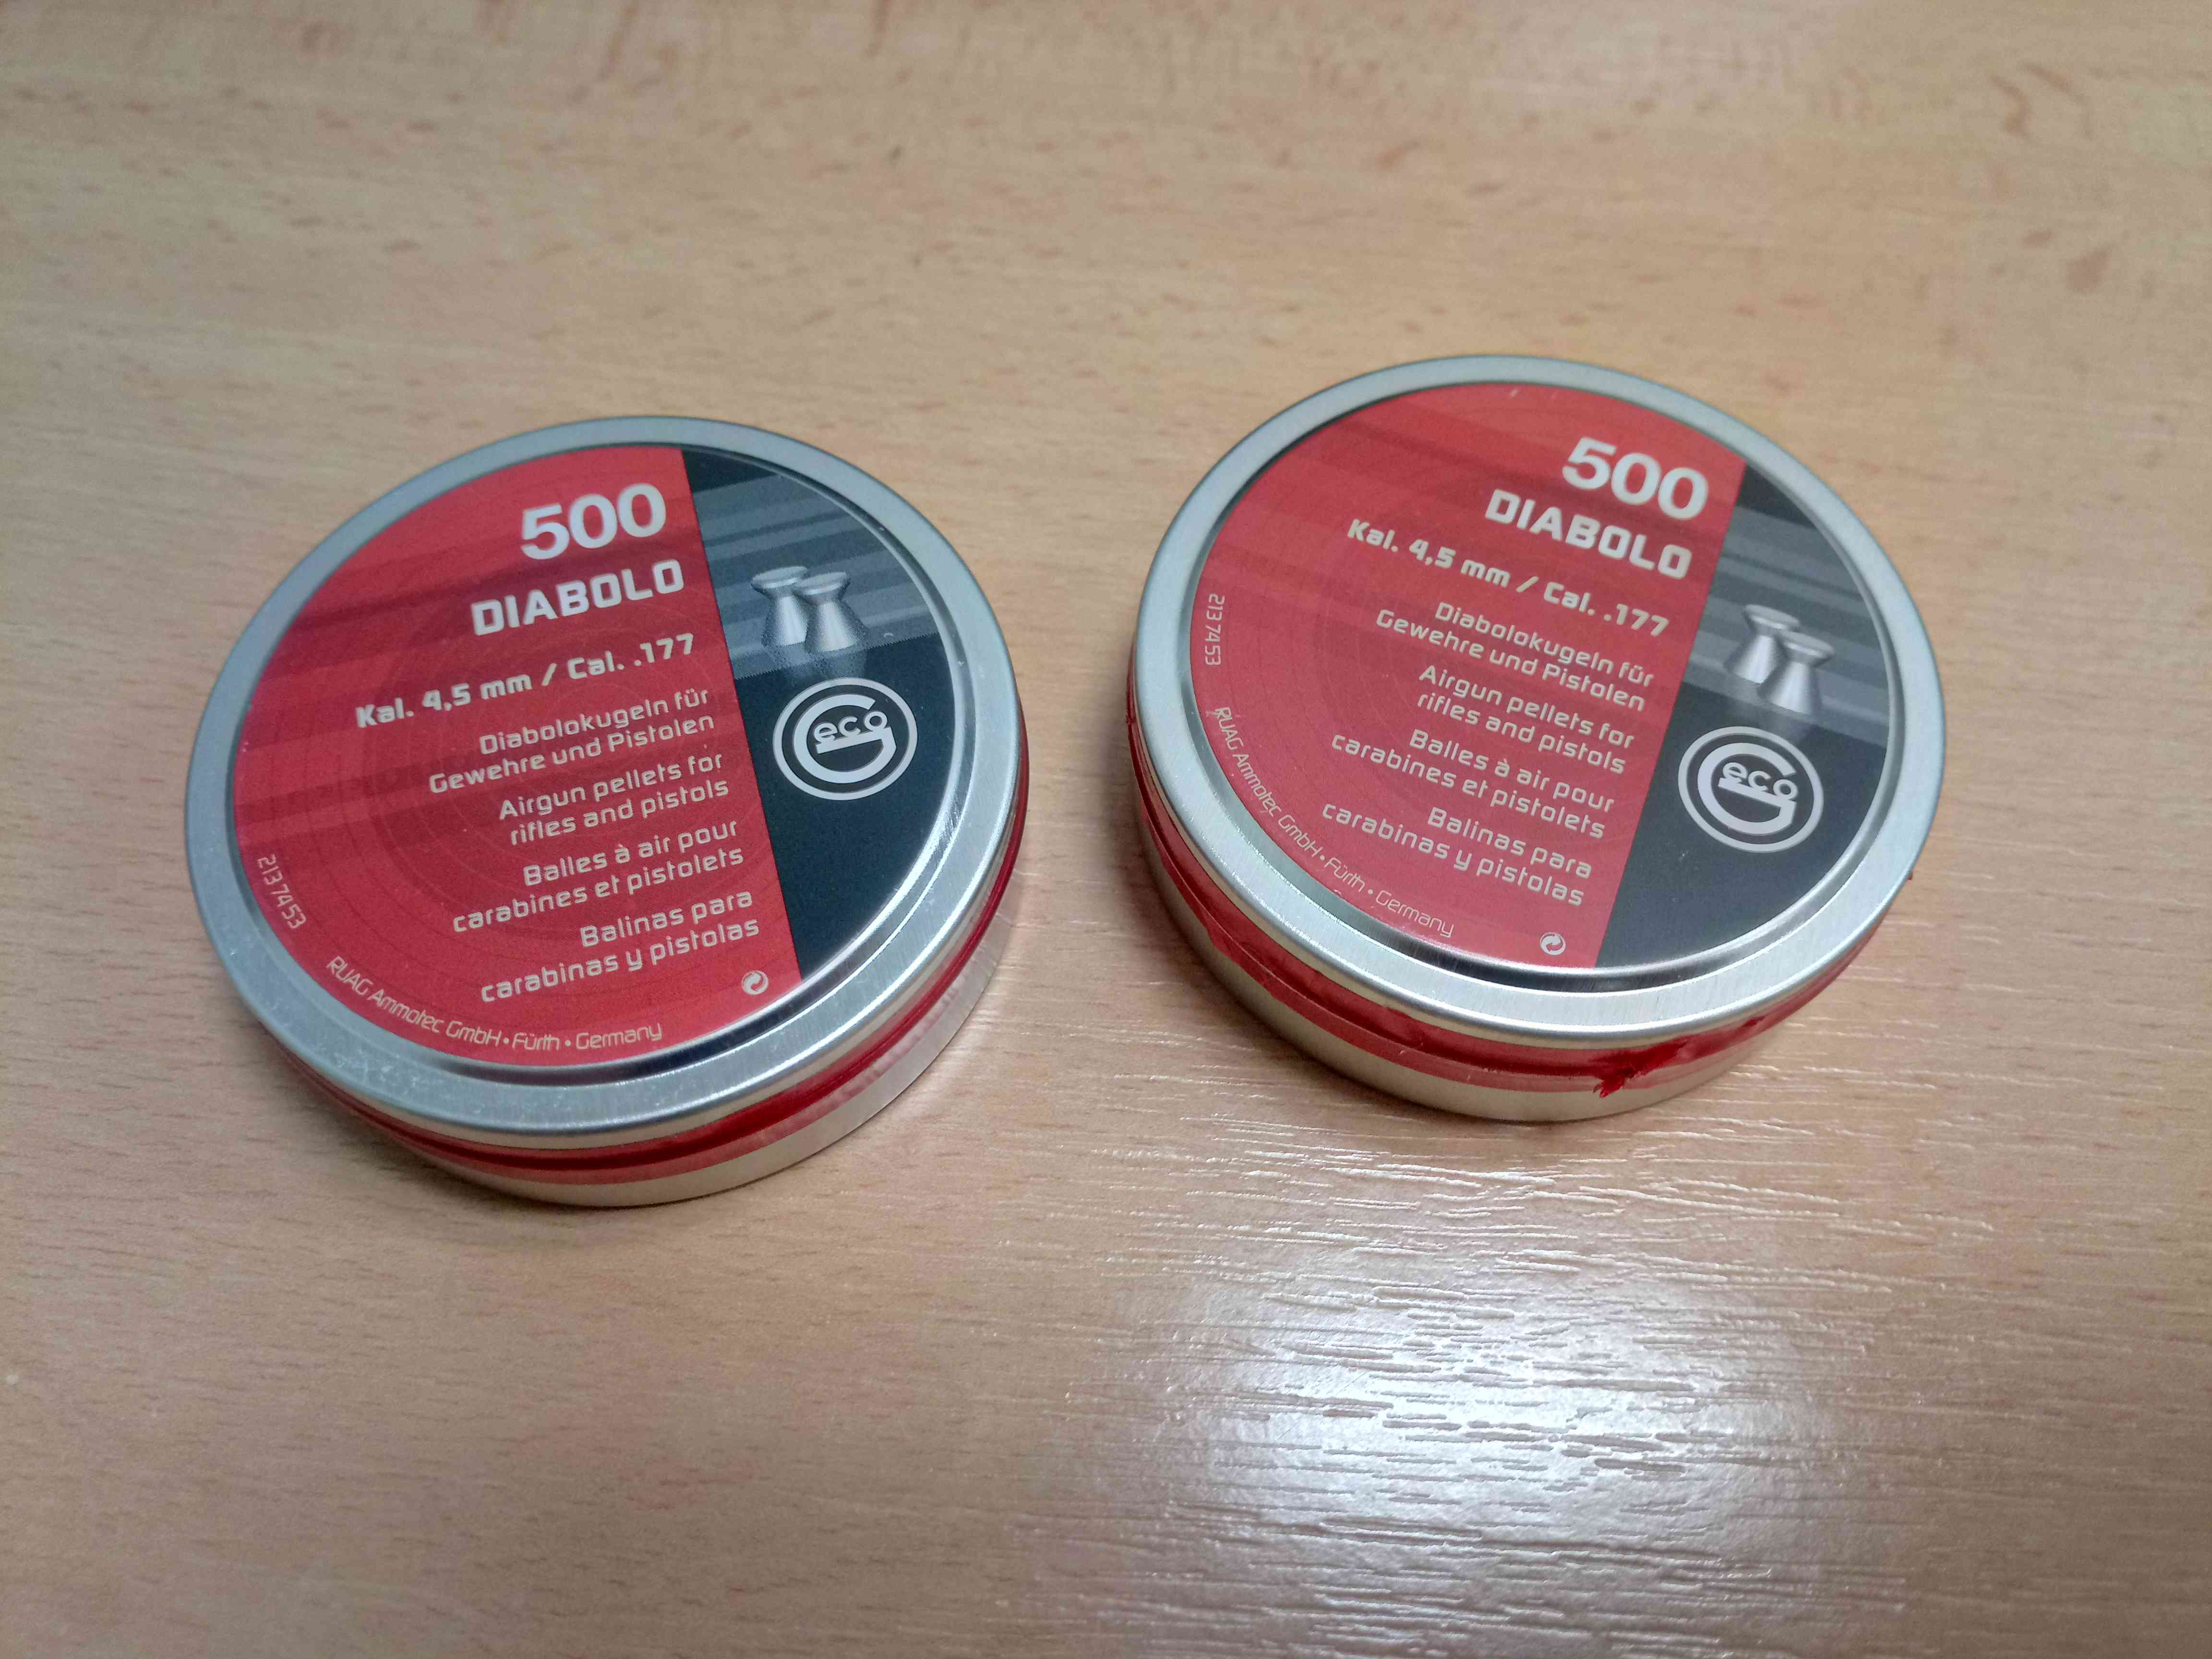 Diabolo GECO BASIC 500ks 4,5mm cal. 177